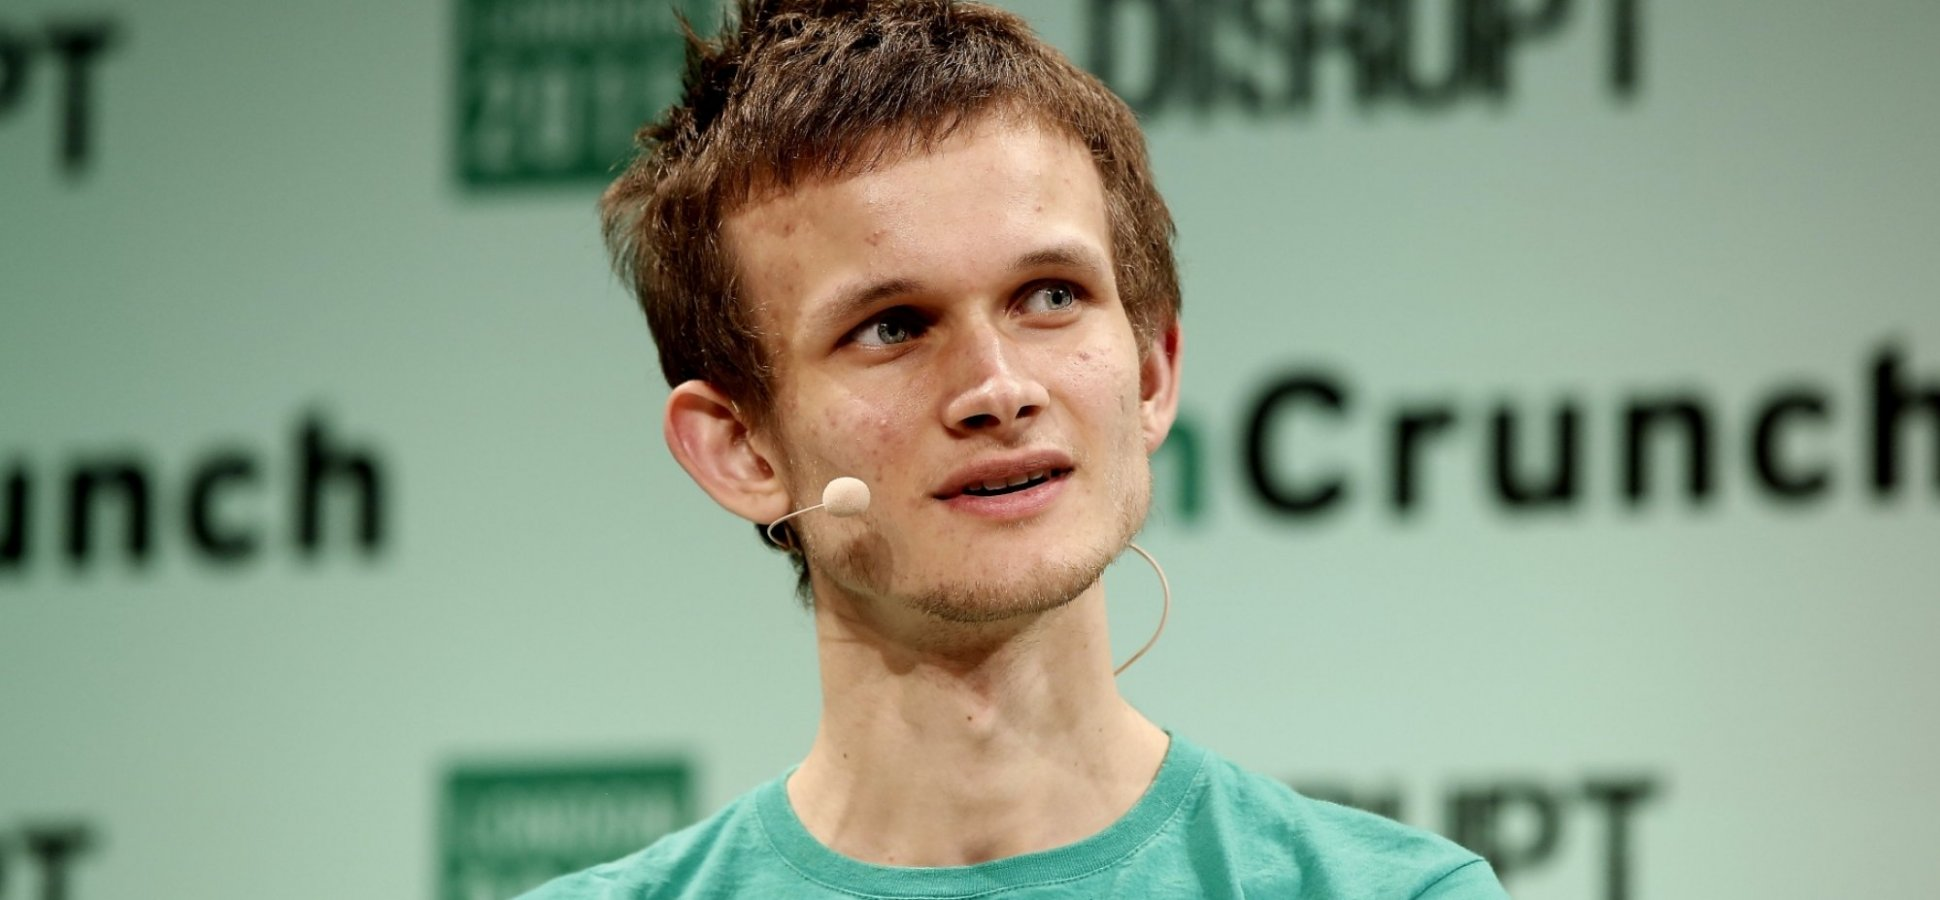 The Boy Genius Behind the $28.5 Billion Cryptocurrency Ethereum